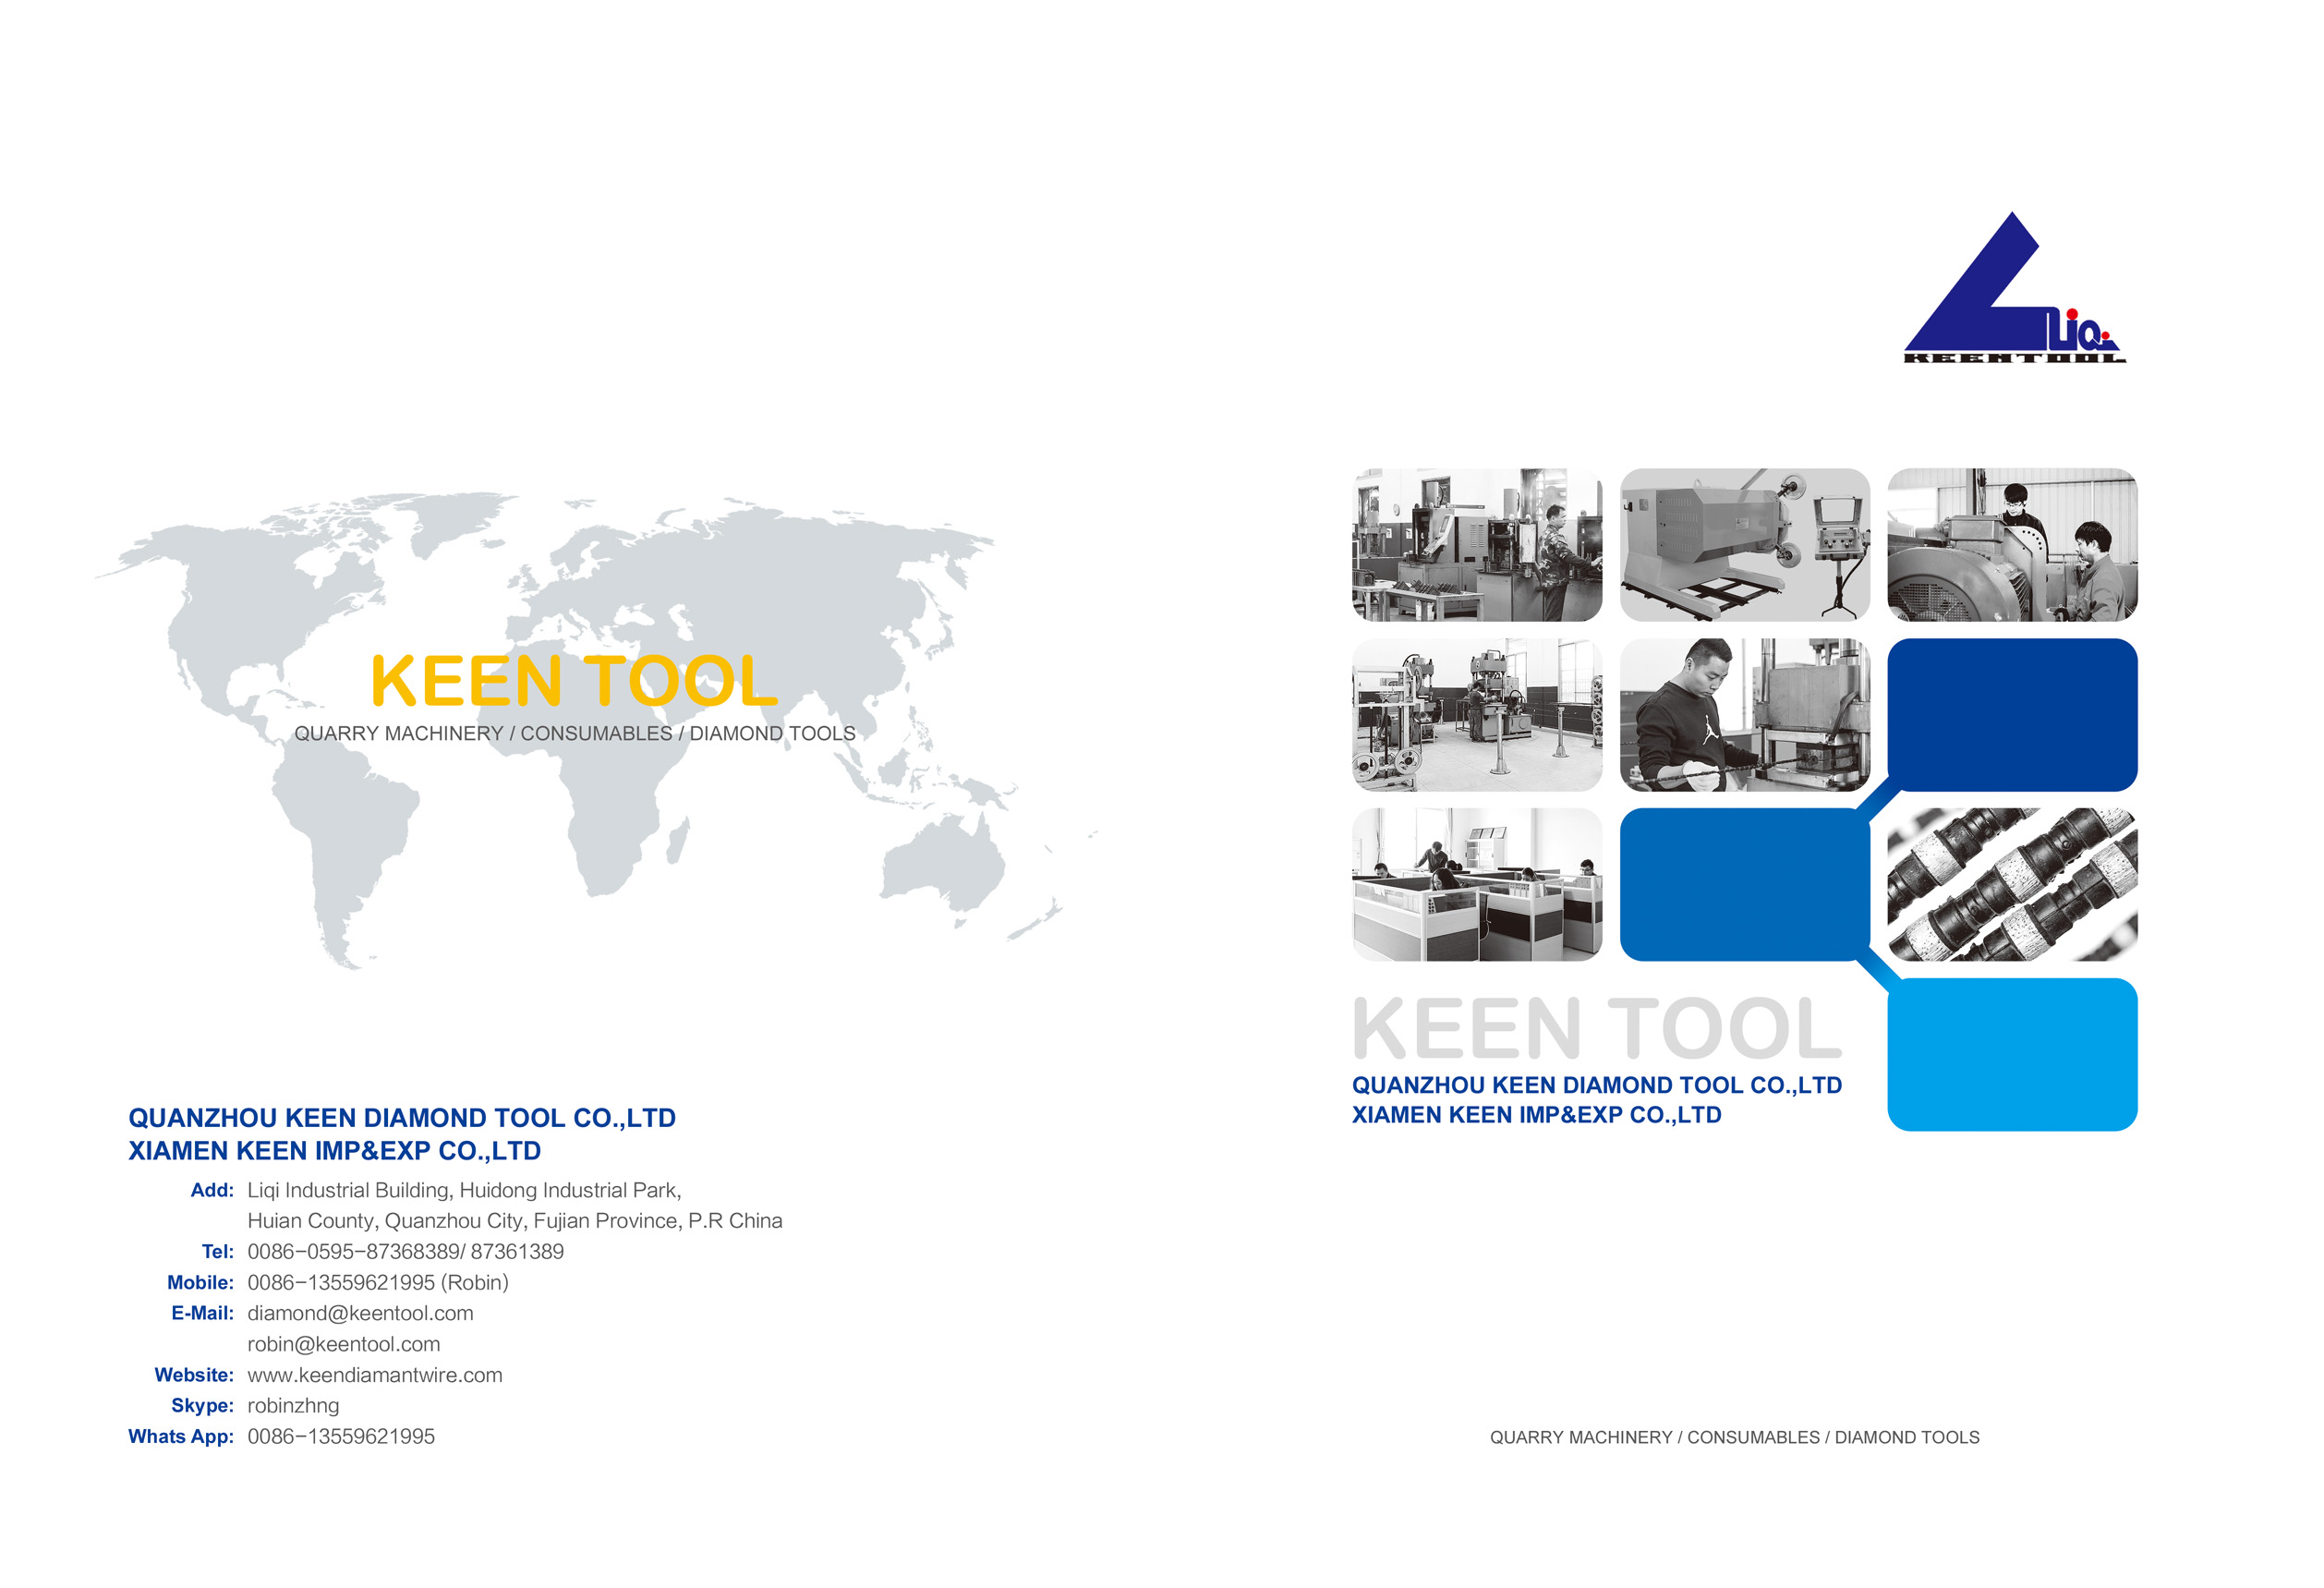 KEENTOOL E-CATALOG FOR MAIN PRODUCTS